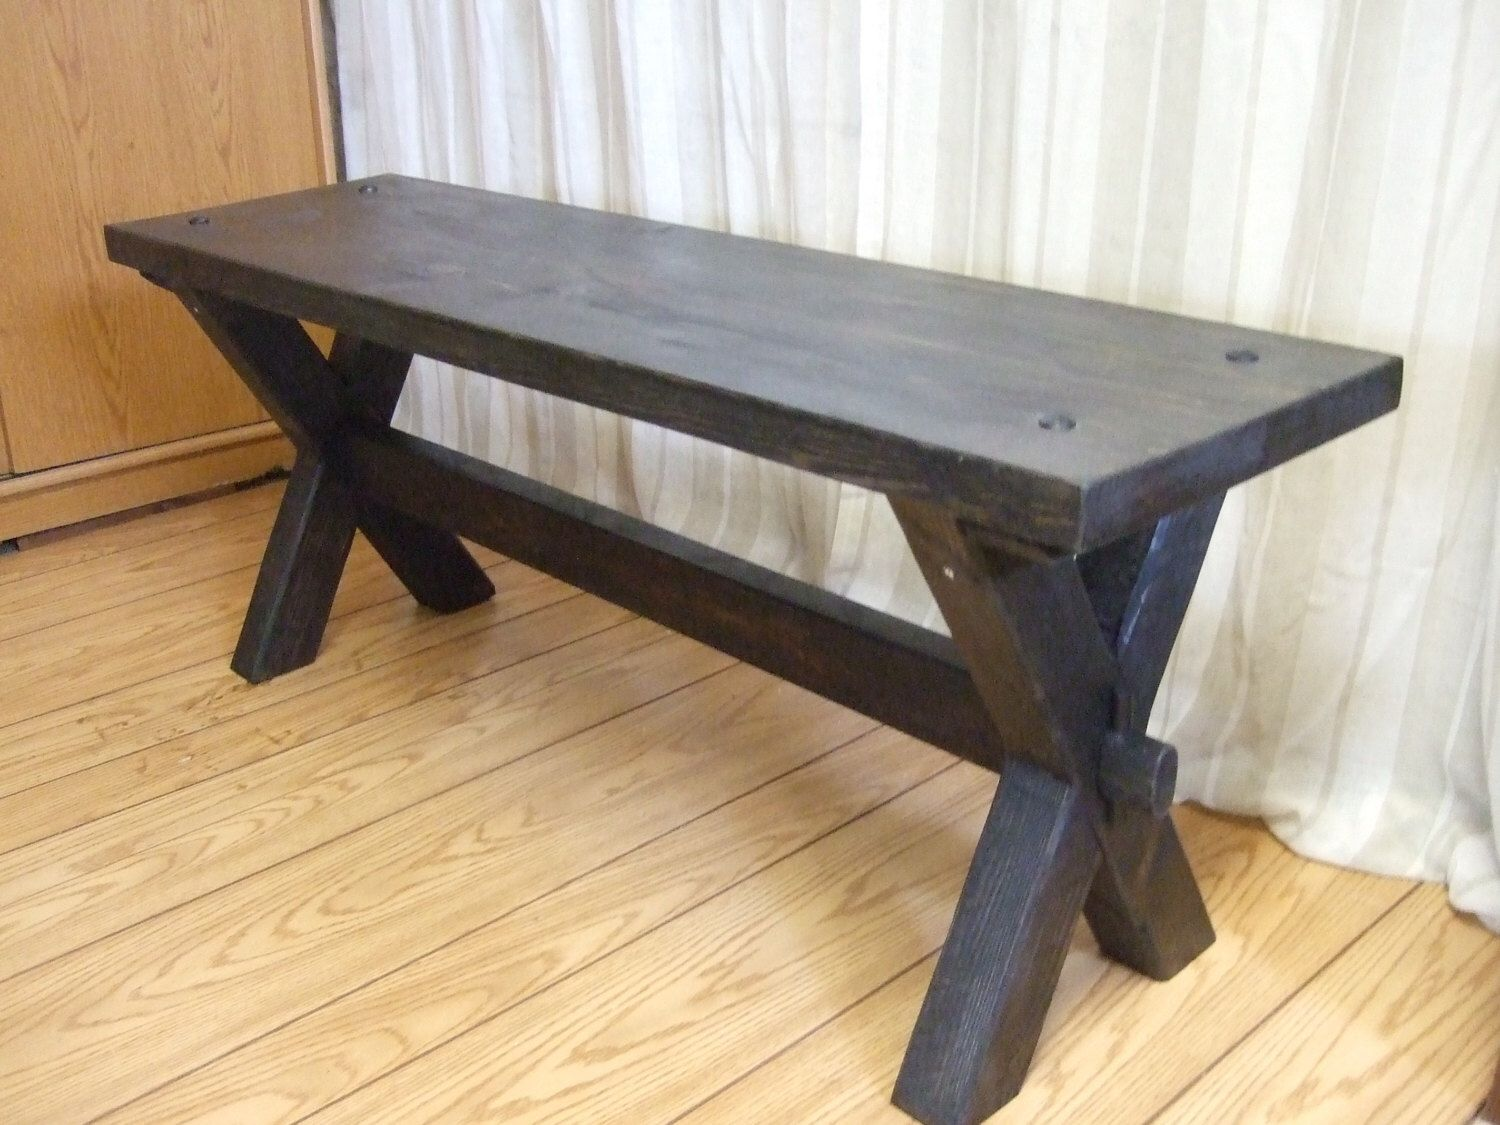 Farmhouse Style Bench Rustic Bench Farm Bench Handmade Bench